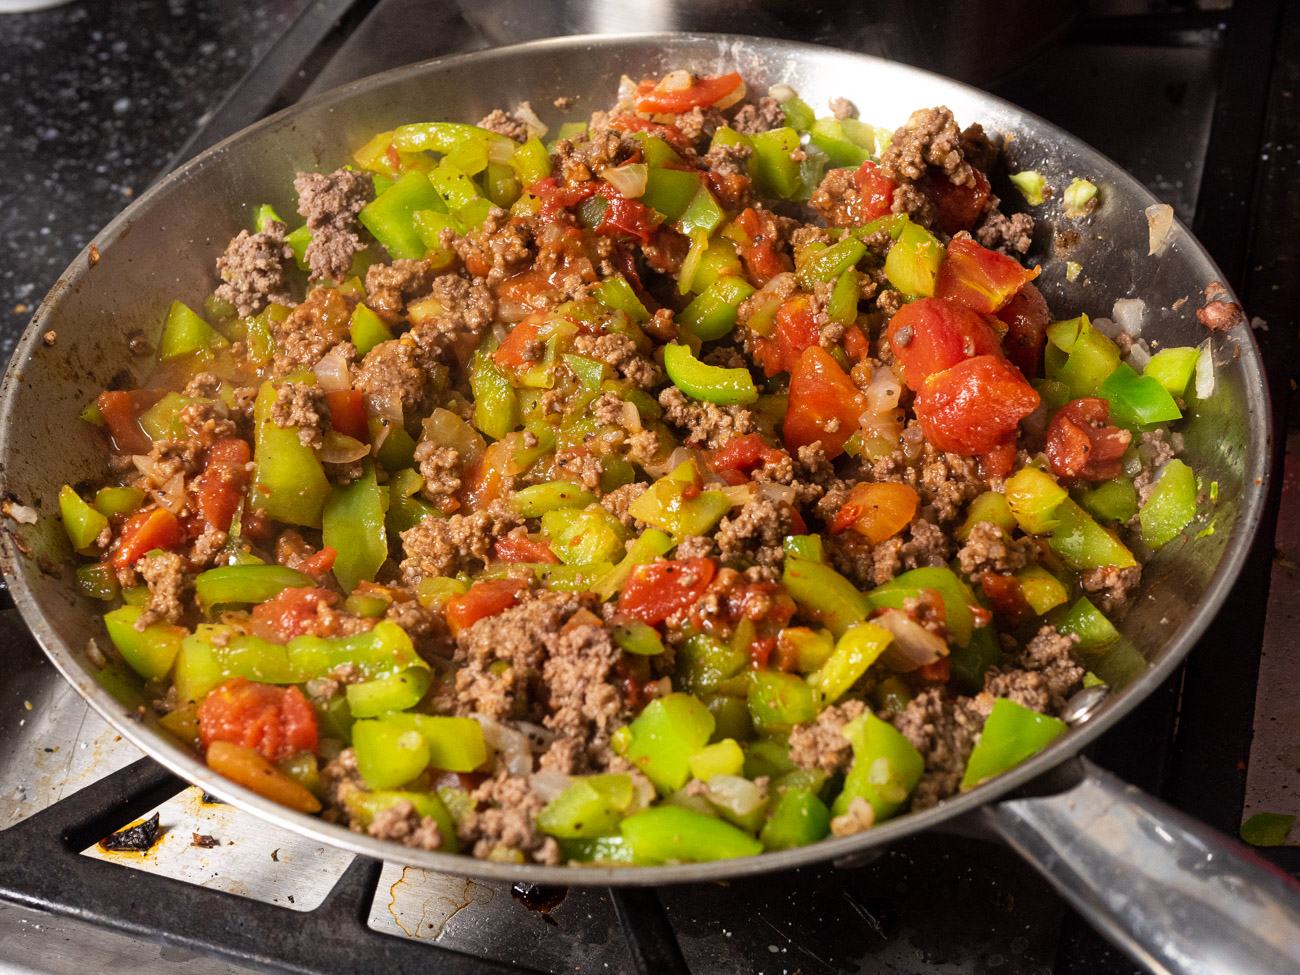 Add garlic, salt, pepper, tomato paste, diced tomatoes, and Worcestershire sauce to the skillet and bring to a boil.